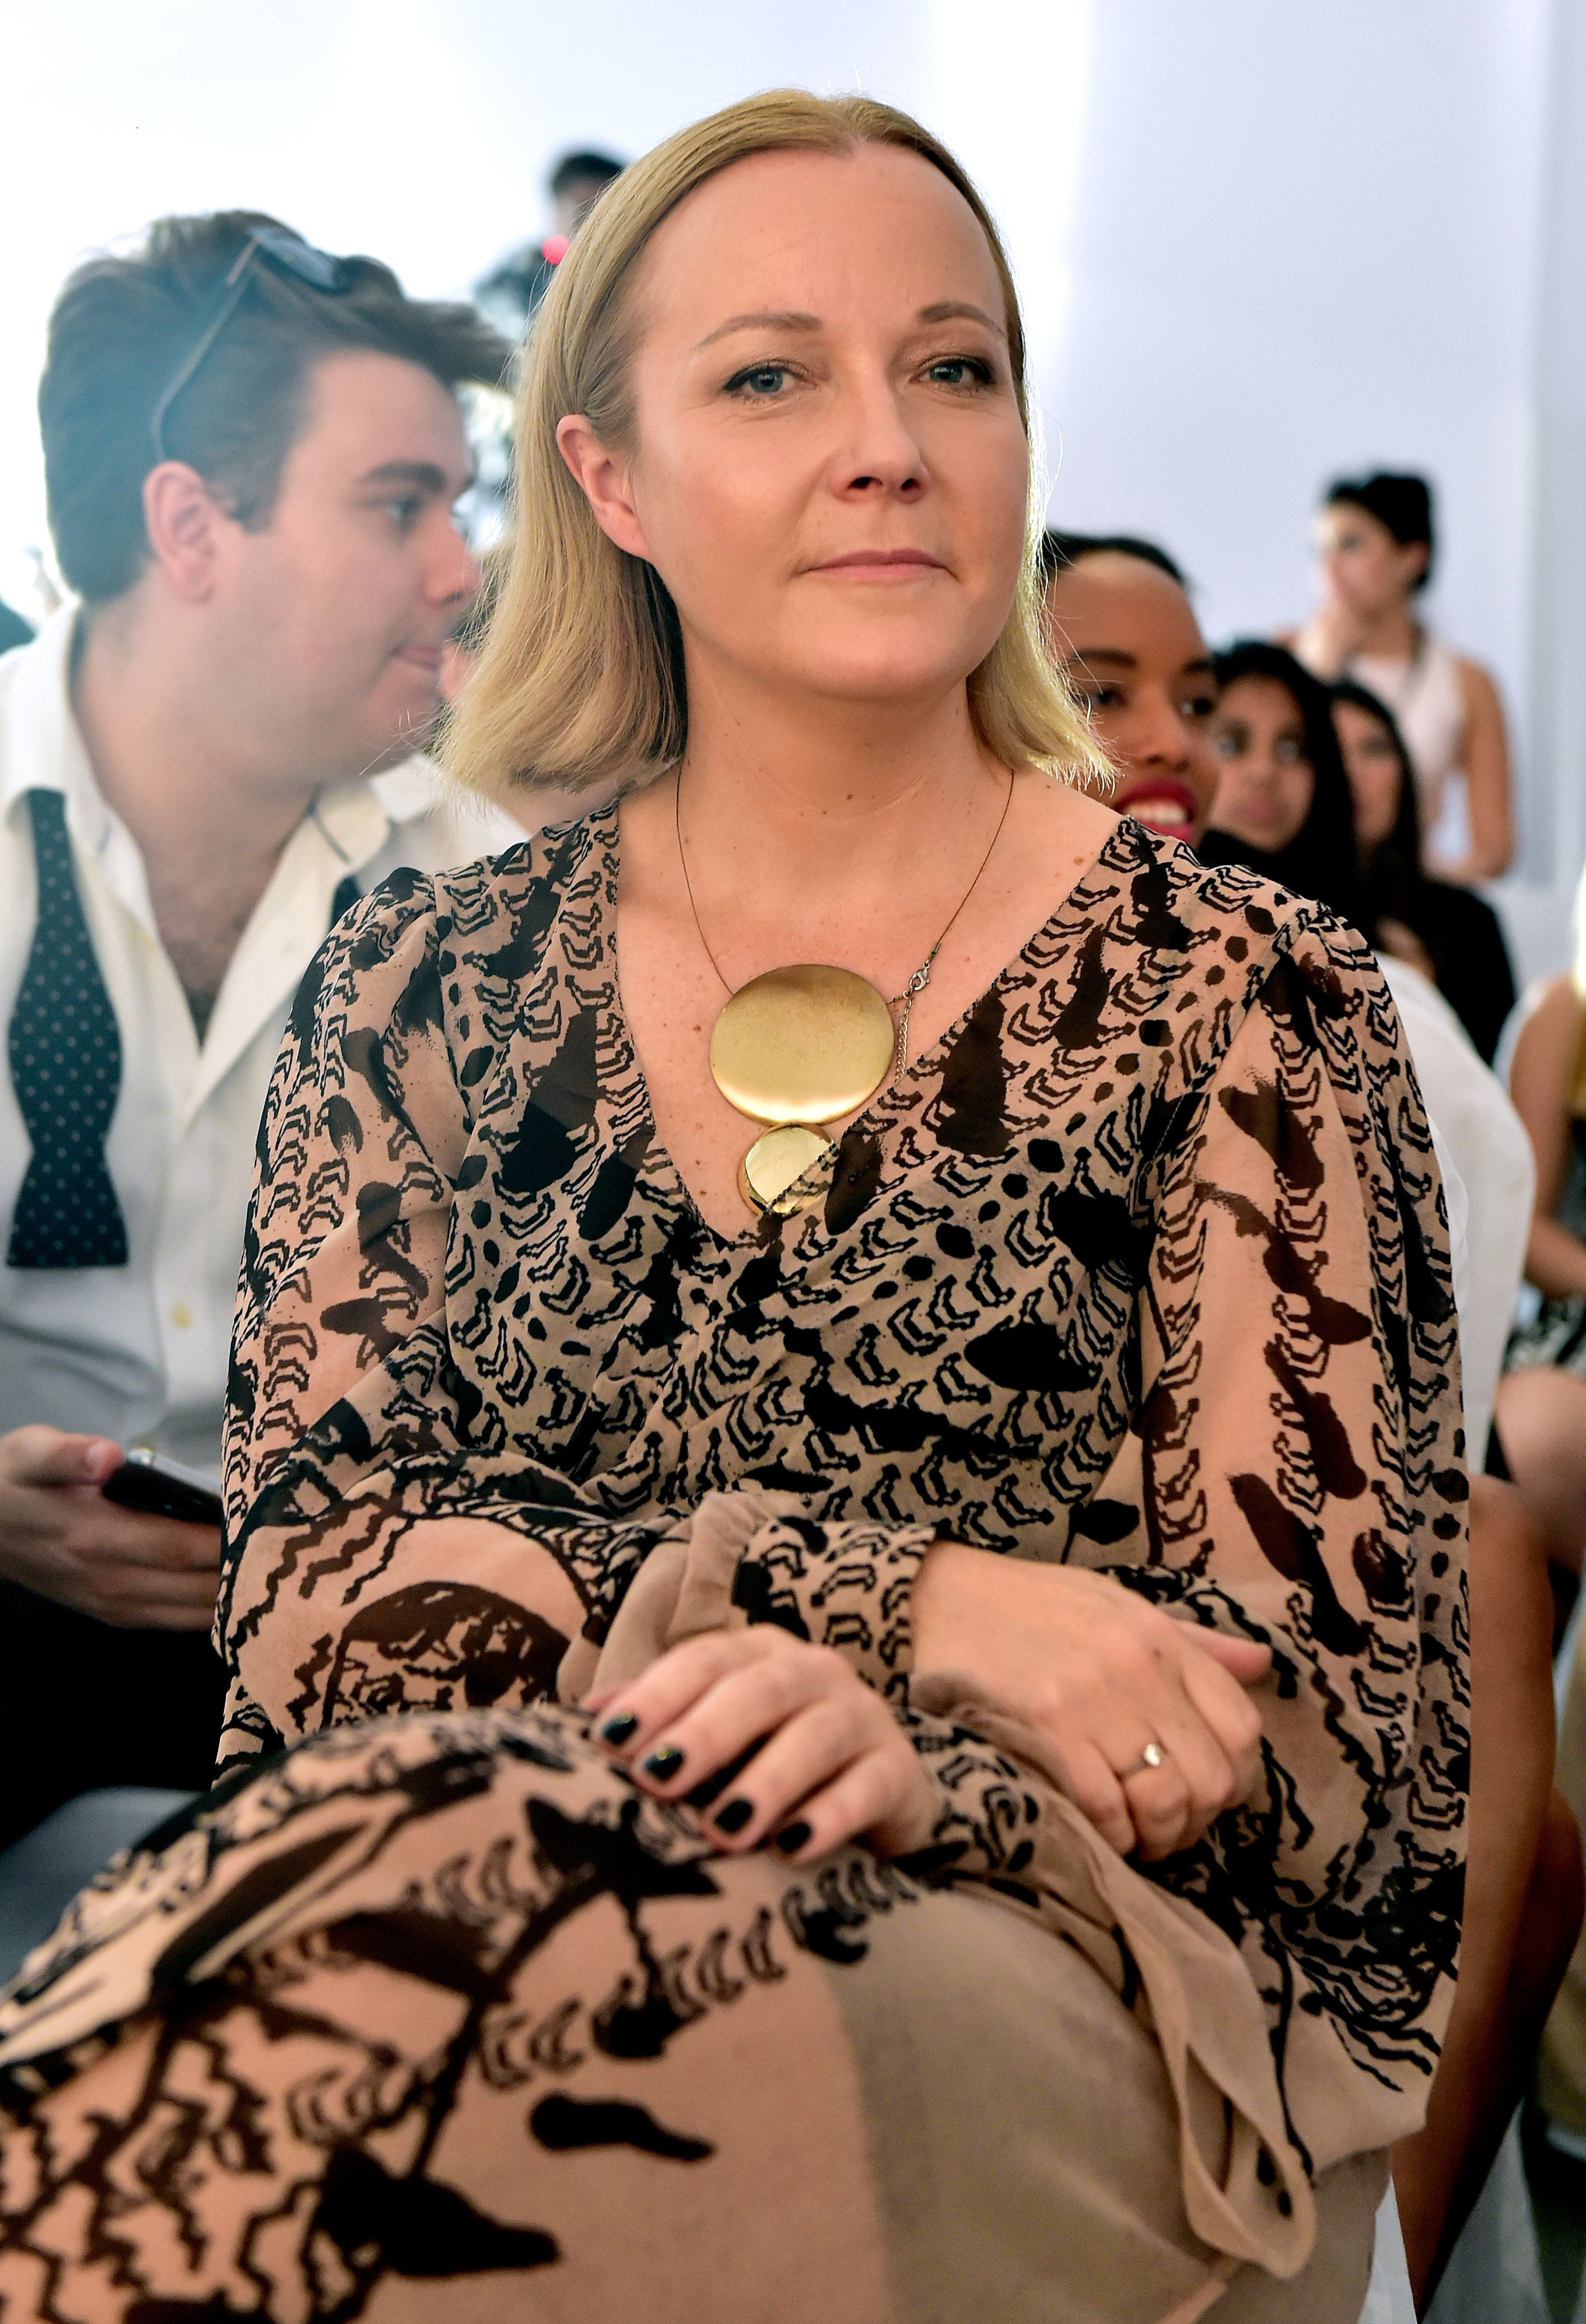 DUBAI, UNITED ARAB EMIRATES - OCTOBER 21:  Jane Boddy, head of womenswear and colour teams at WGSN, ahead of the Trend Forecasting with WGSN fashion talk during Fashion Forward Spring/Summer 2017 at the Dubai Design District on October 21, 2016 in Dubai, United Arab Emirates.  (Photo by Cedric Ribeiro/Getty Images)